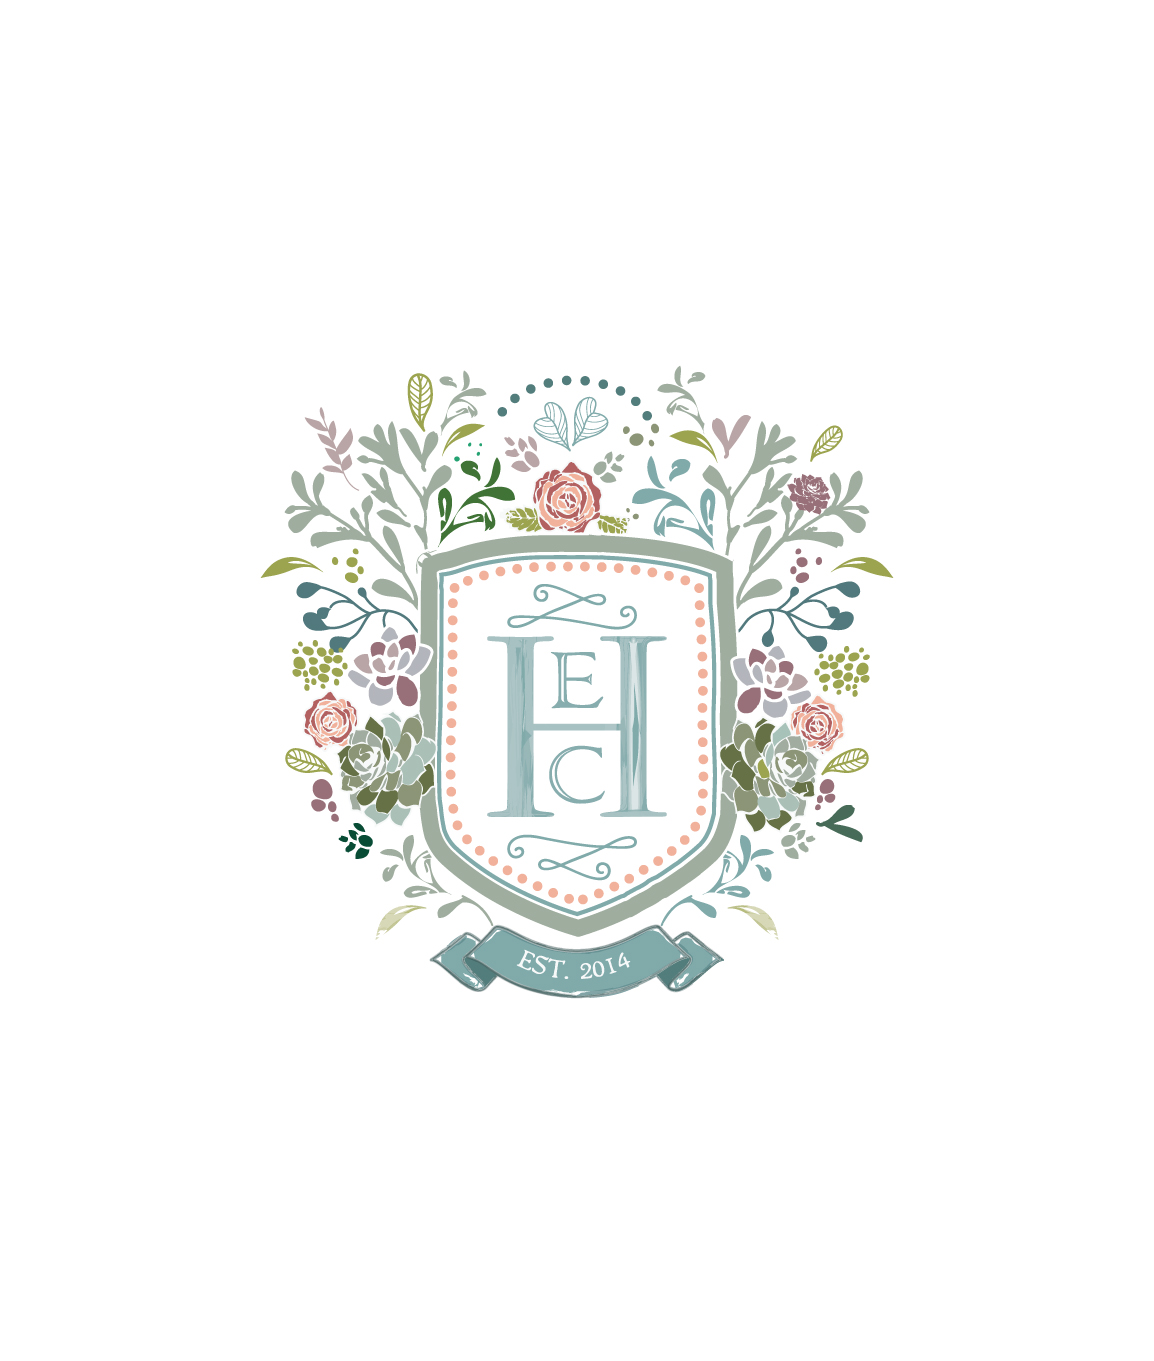 pastel-colored crest featuring the letters E, C and H